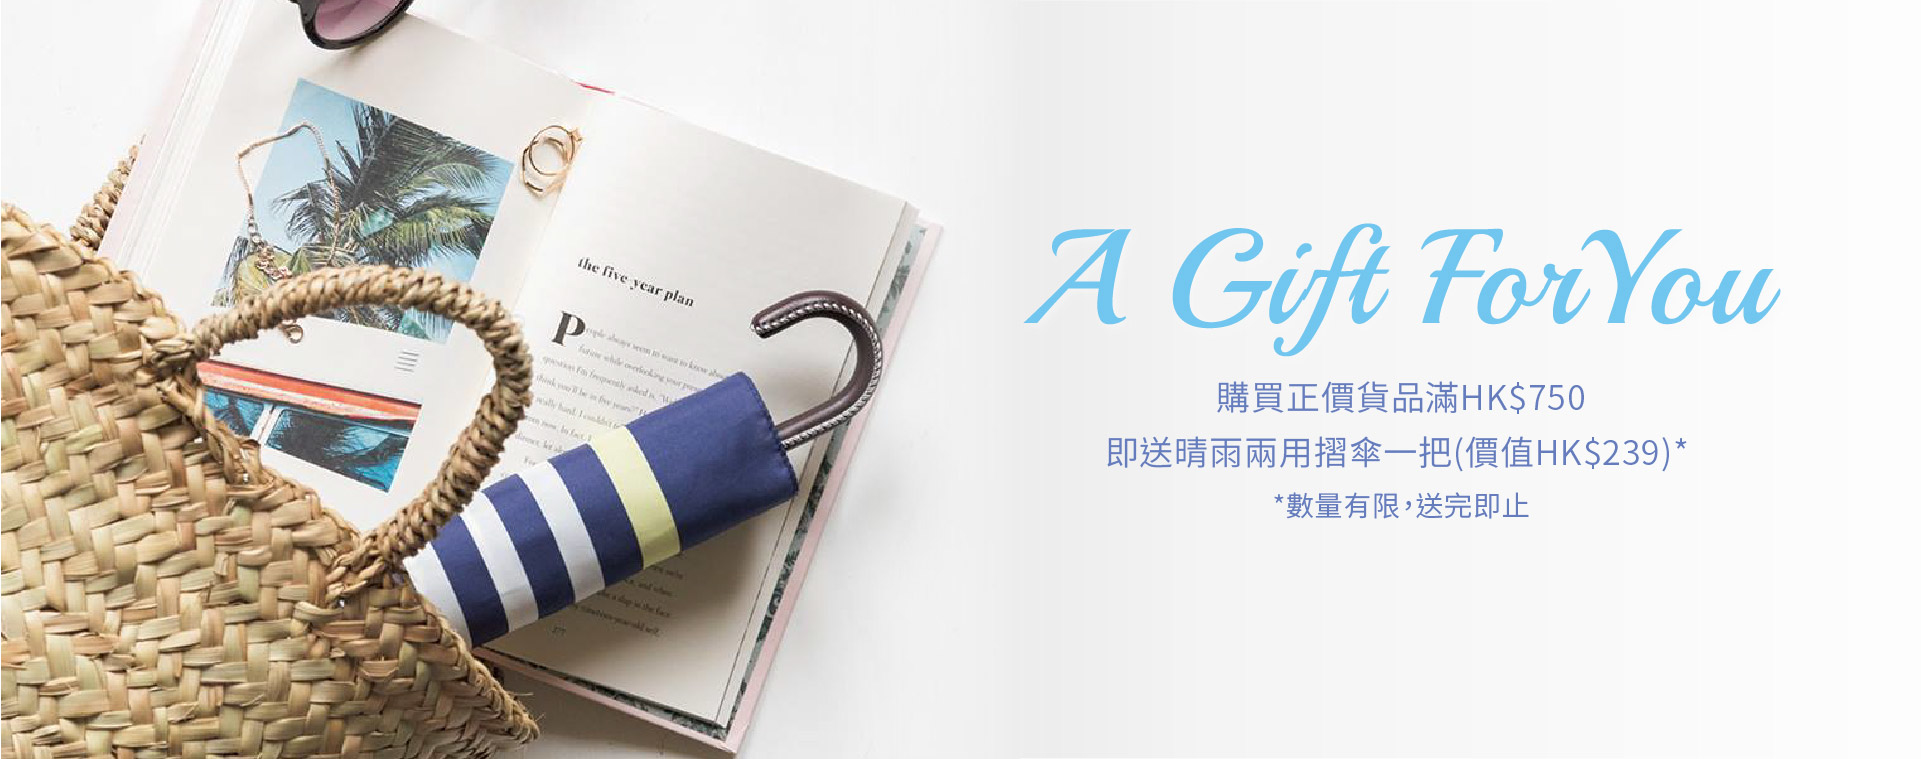 Ans,網店優惠,春季購物優惠,送禮, 2019 春夏新品,Online Promotion, Free Gifts, Spring Shopping Offers, 2019 Spring Summer Collection